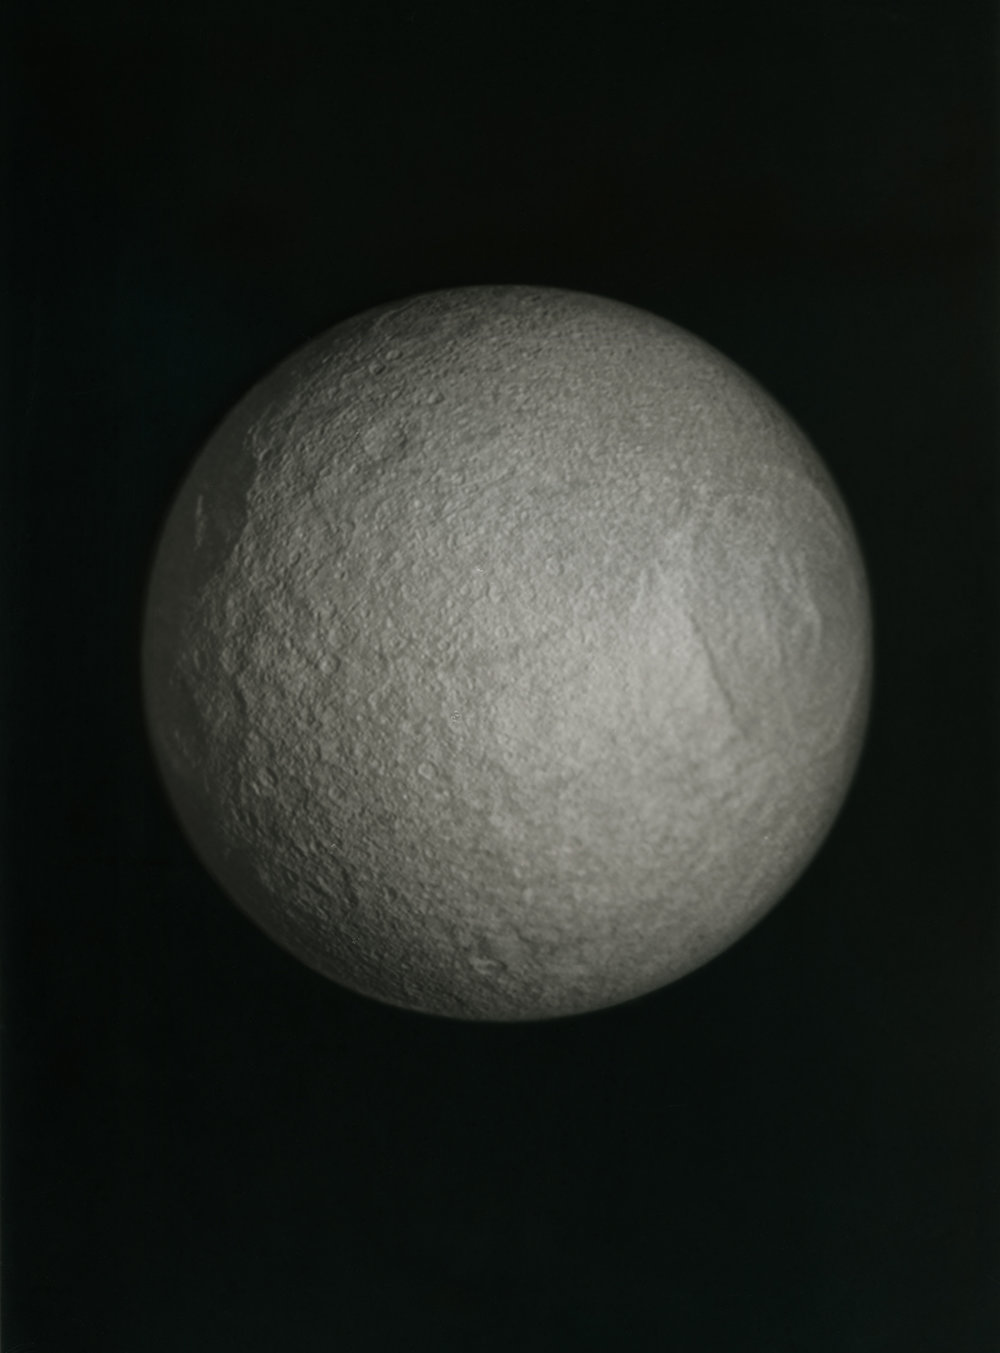 Body 5 - Tethys (NASA:JPL:ESA:University of Arizona) Digital Version.jpg